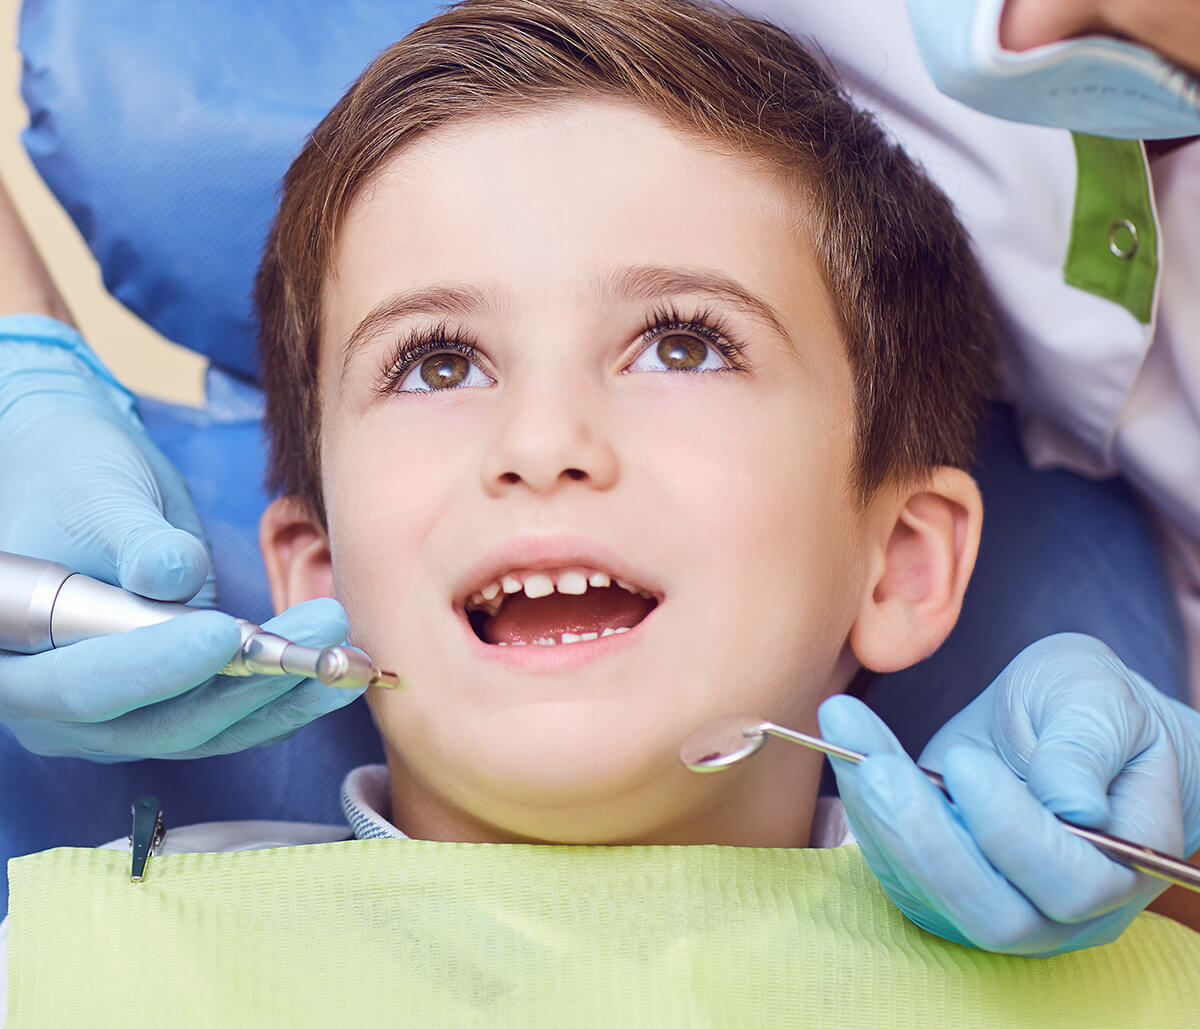 Are You Considering Dental Sealant for Your Child? Dentist in Greensboro, NC Area Discusses the Pros and Cons!